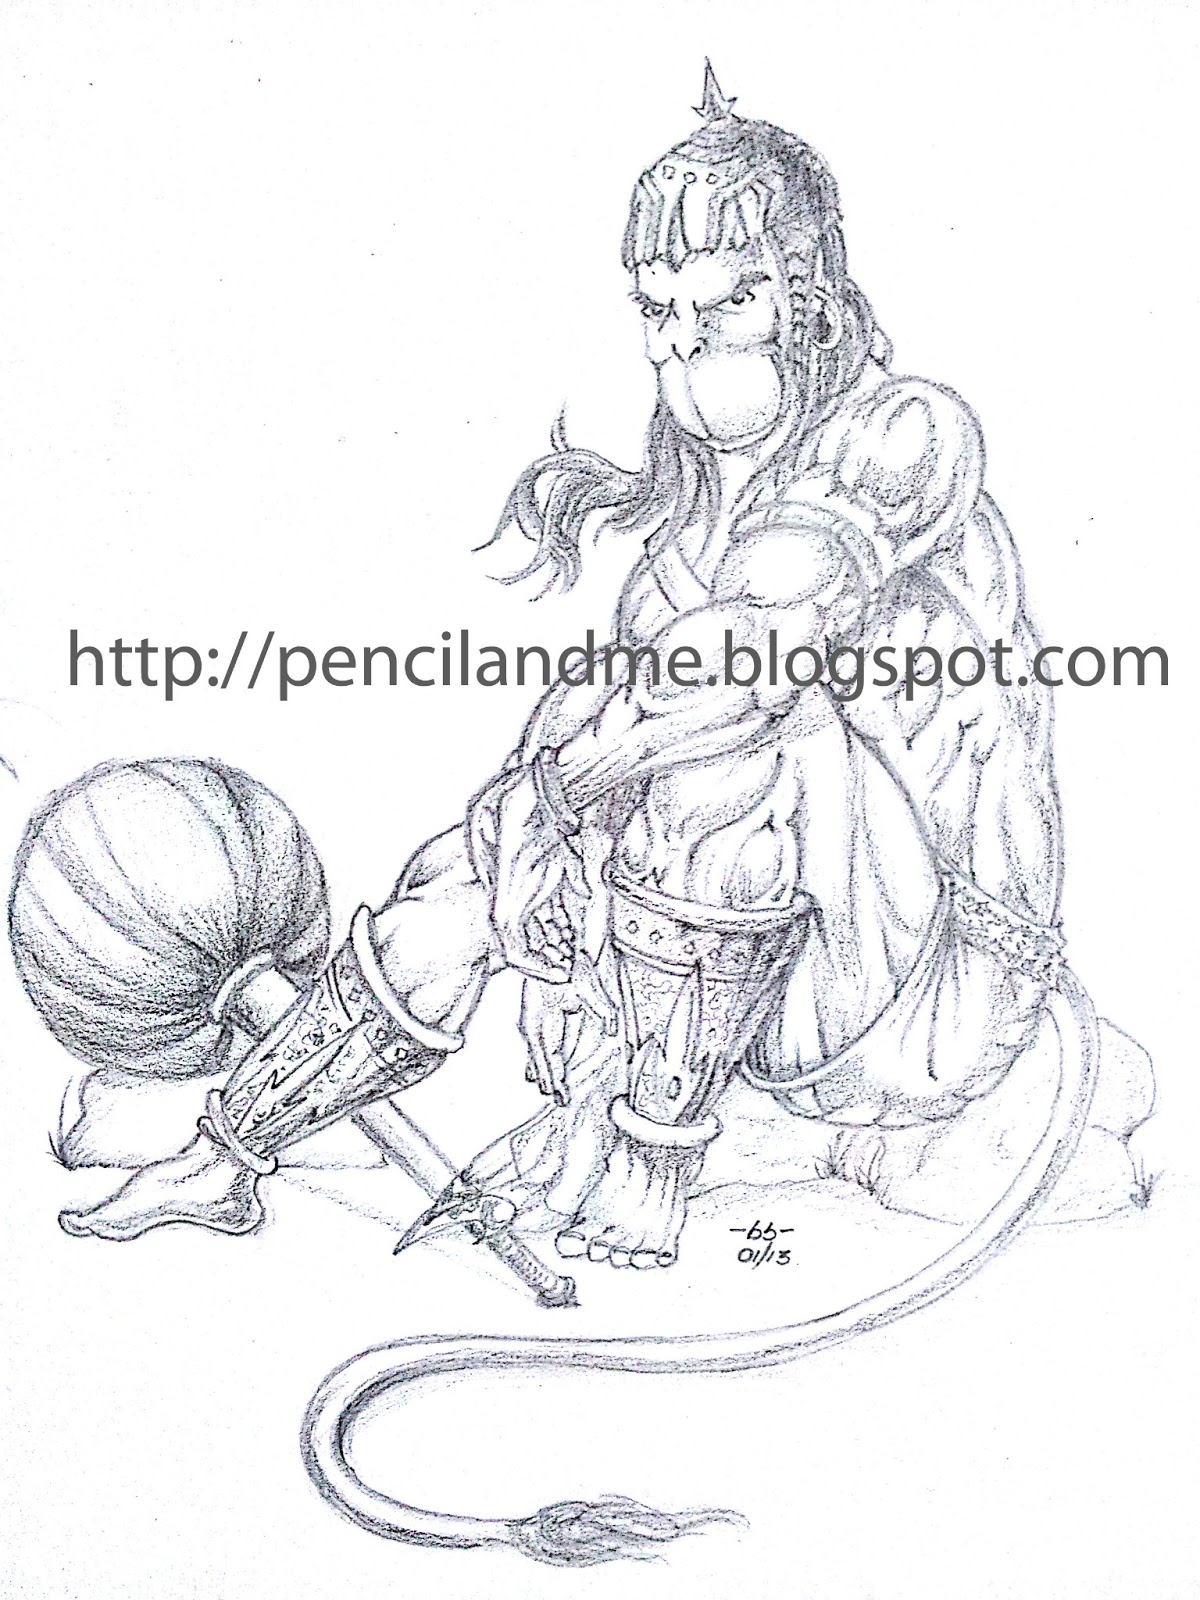 Sathishs gallery pencil sketches techniques and more